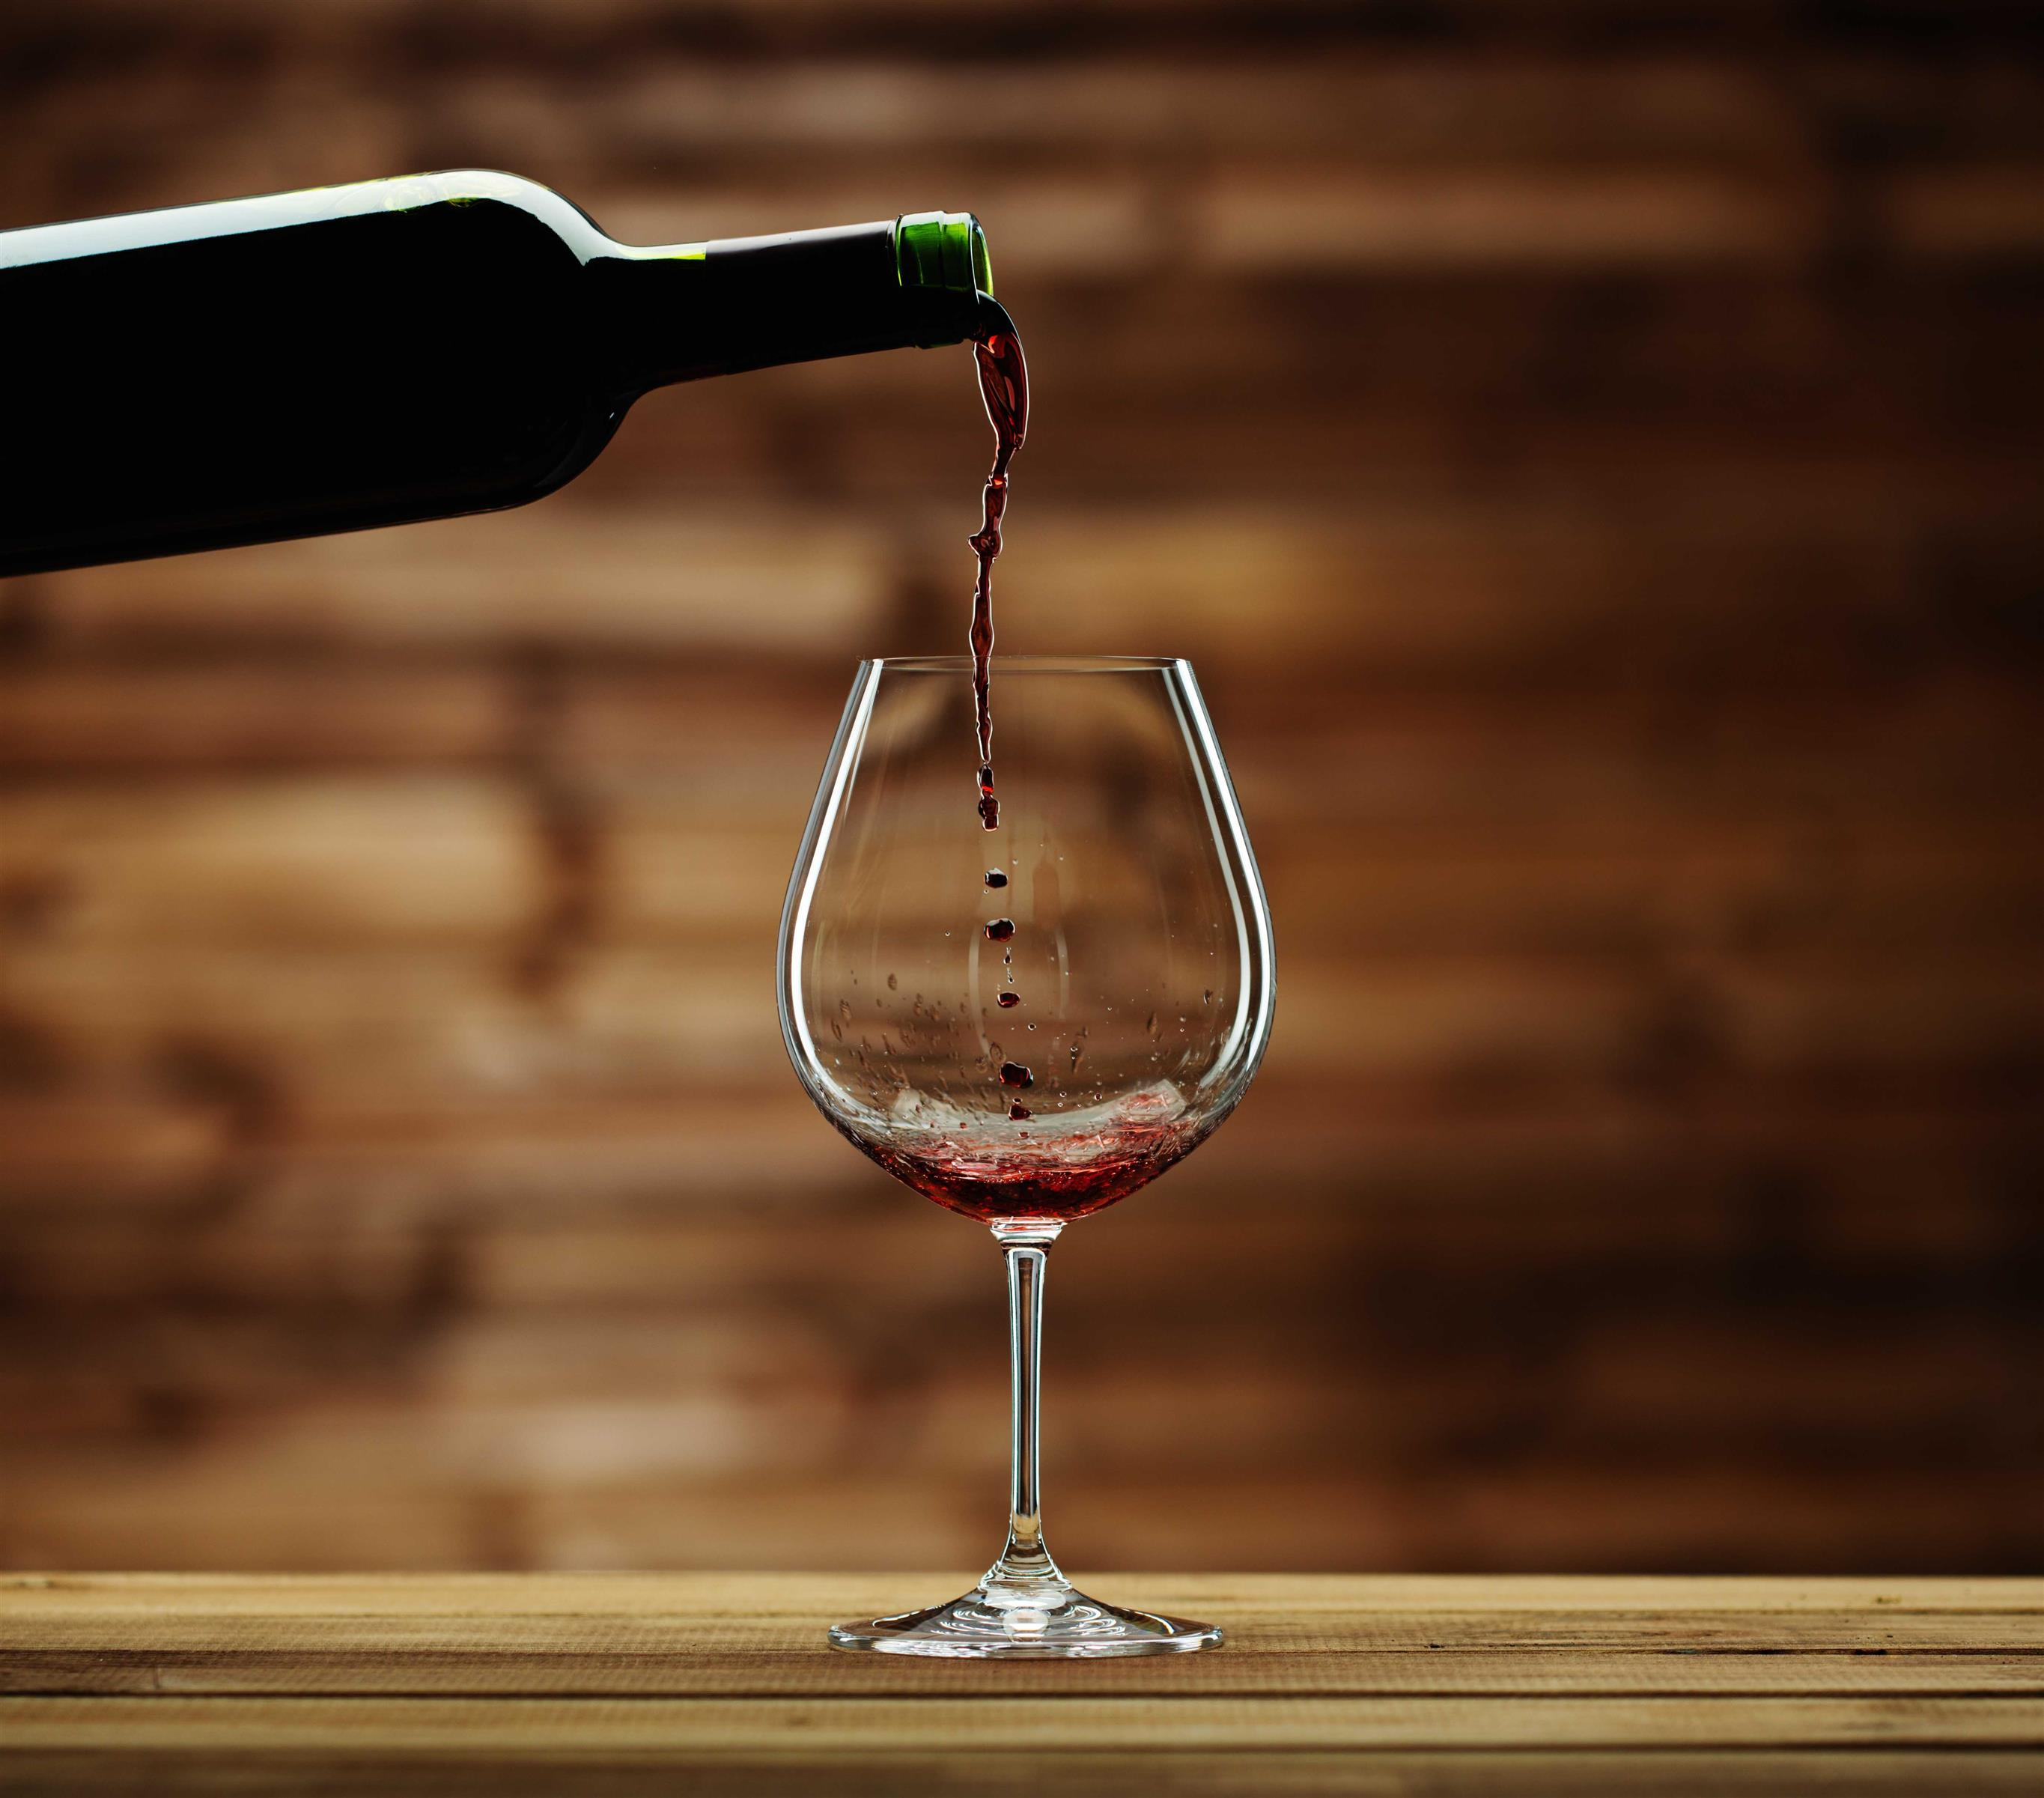 Red wine pouring out of a wine bottle into a glass with a blurred wood background